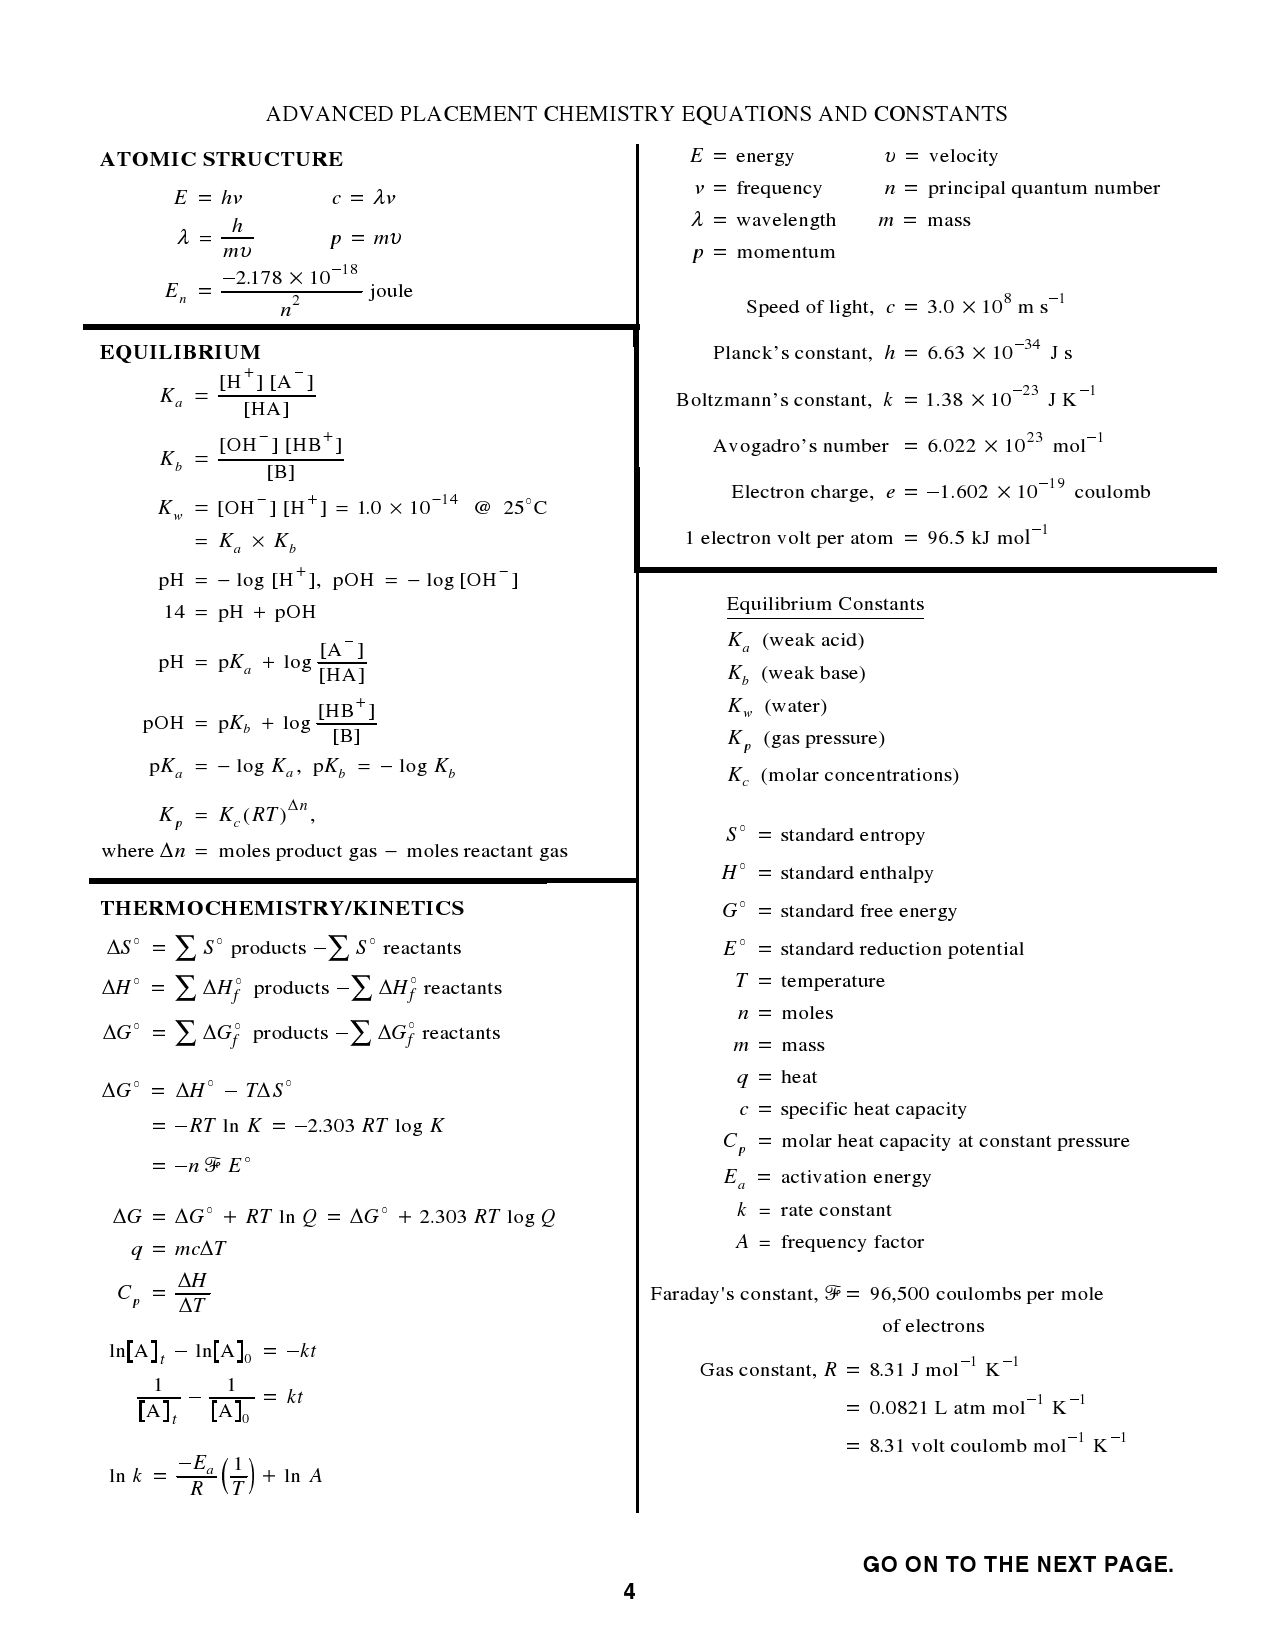 Chemistry Equations And Constants Chemistry Basics Physics And Mathematics Equations